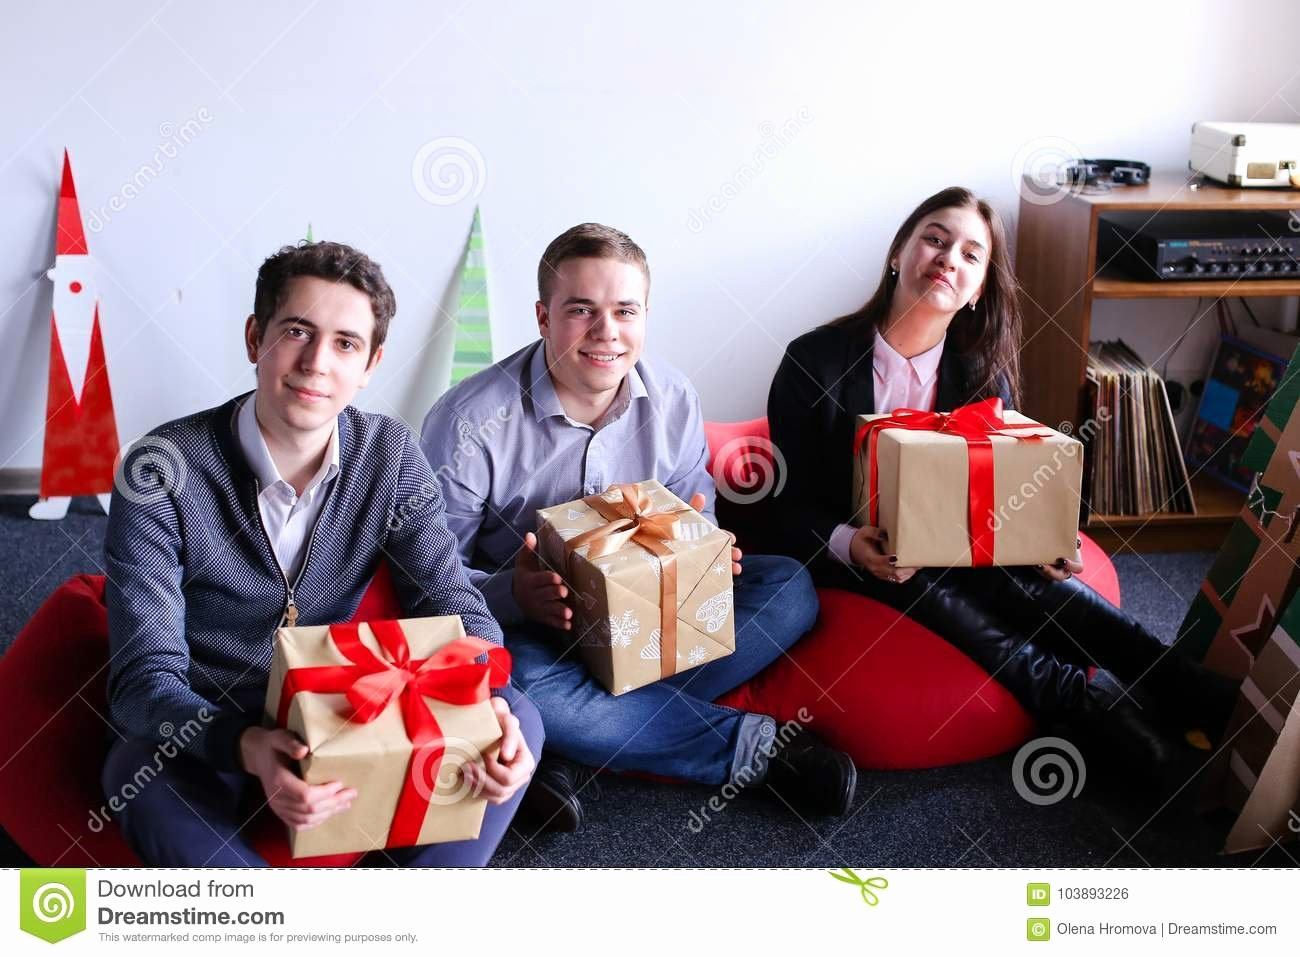 Soft Hands Achievement 2 Man Inspirational Young Woman and Two Man Posing and Smiling with Holiday